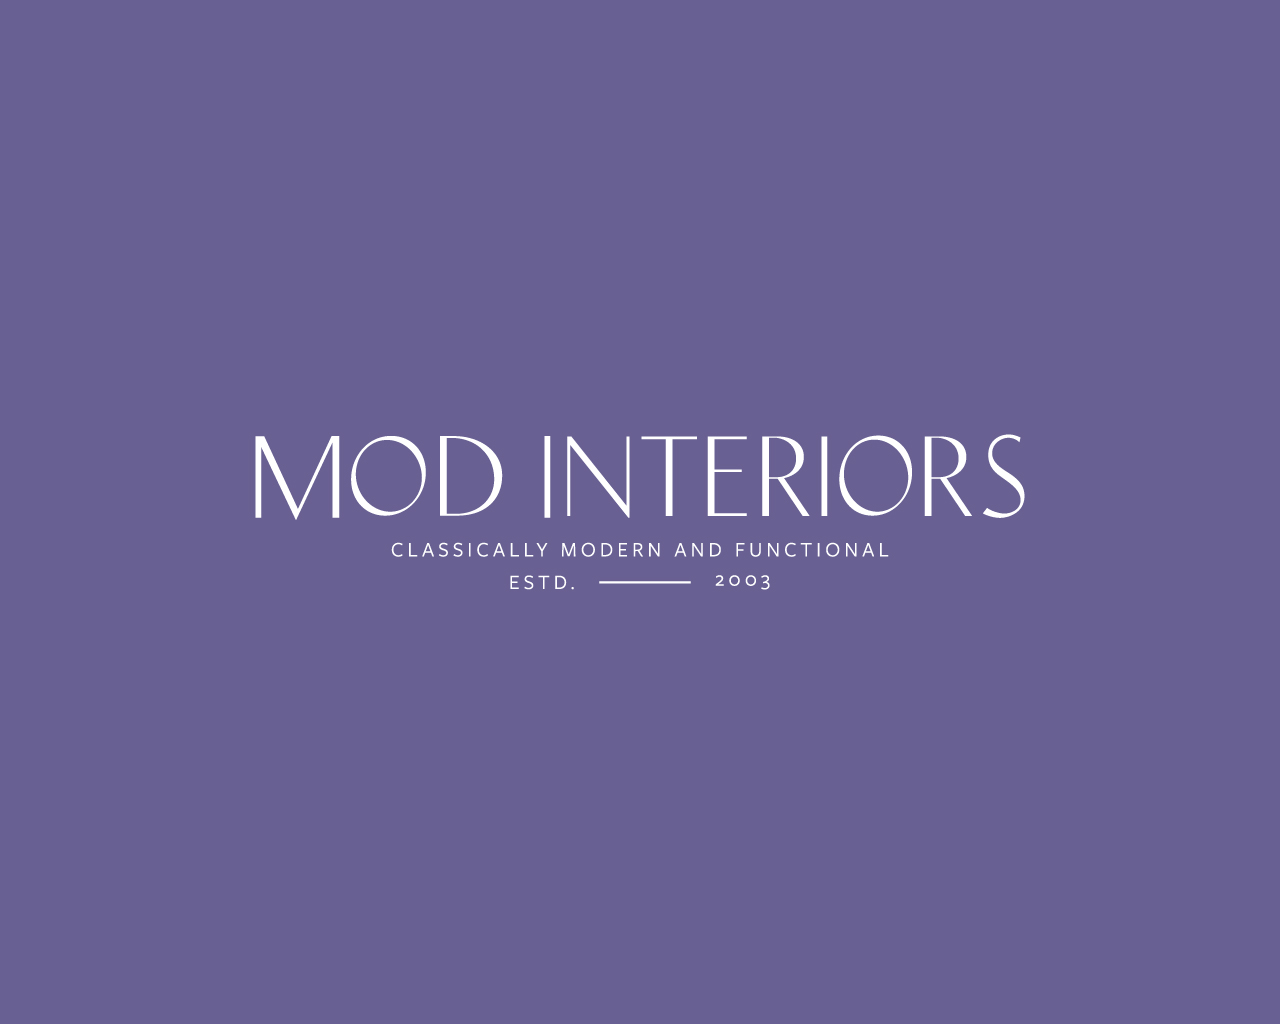 Mod Interiors Logo Design | Witt and Company